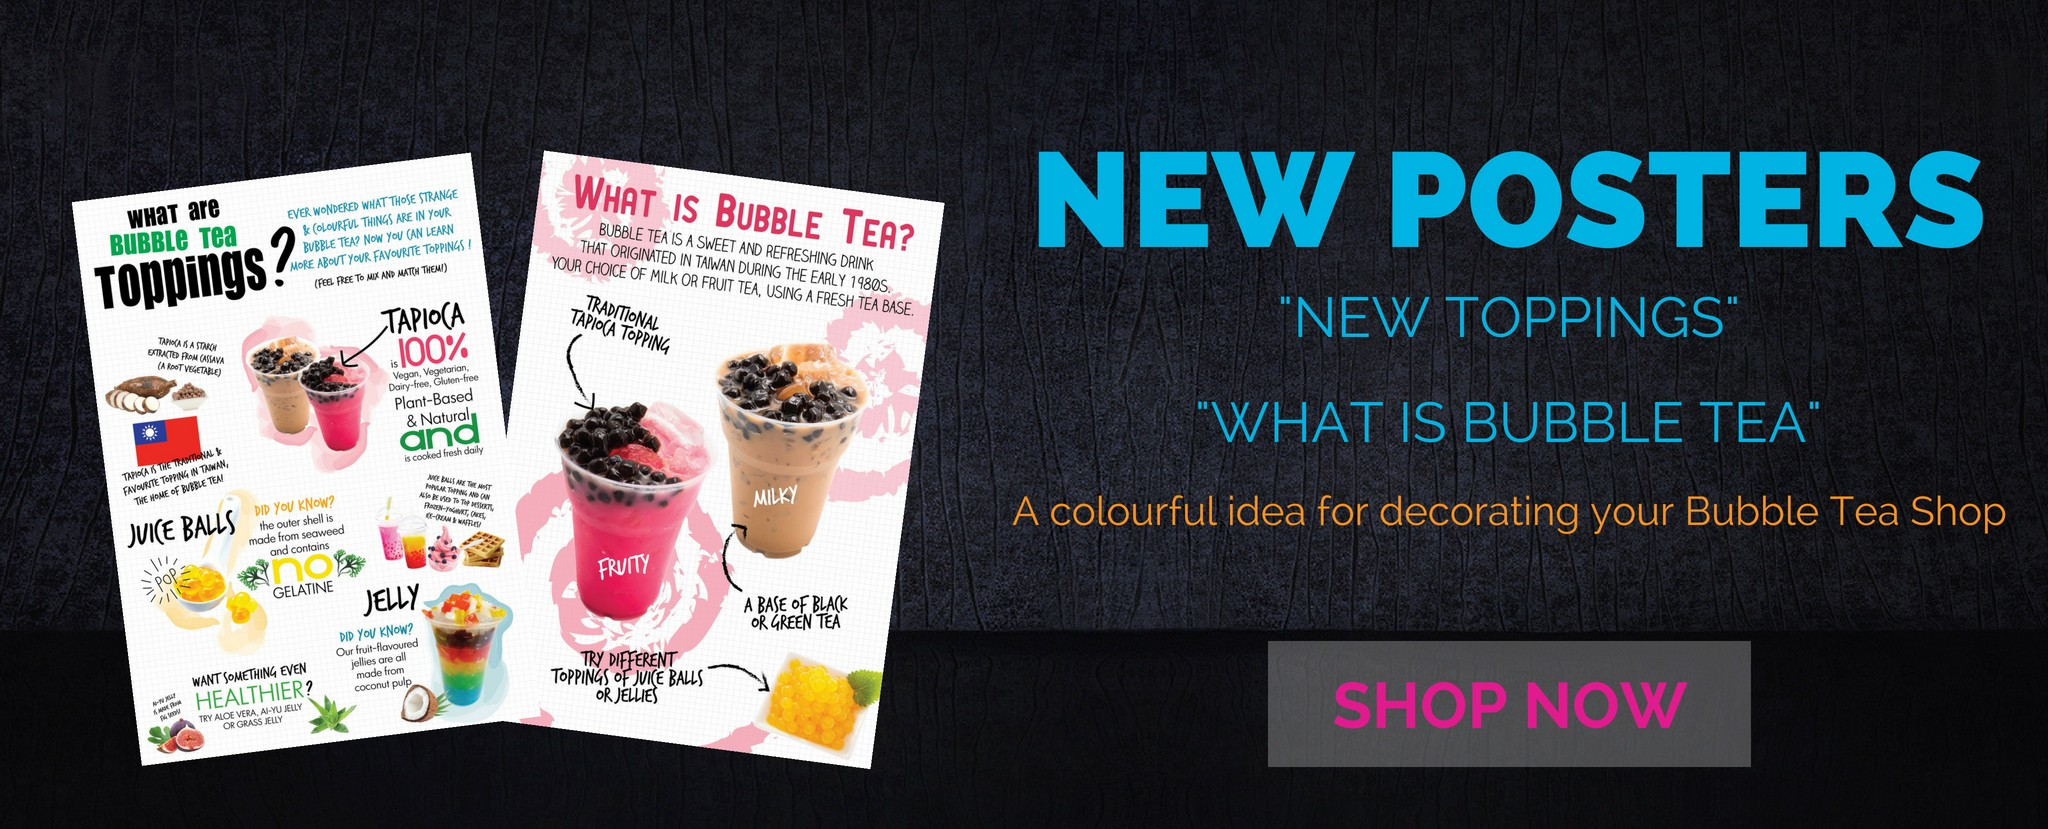 Check Boba Box New Posters. A colourful idea for decorating your Bubble Tea Shop